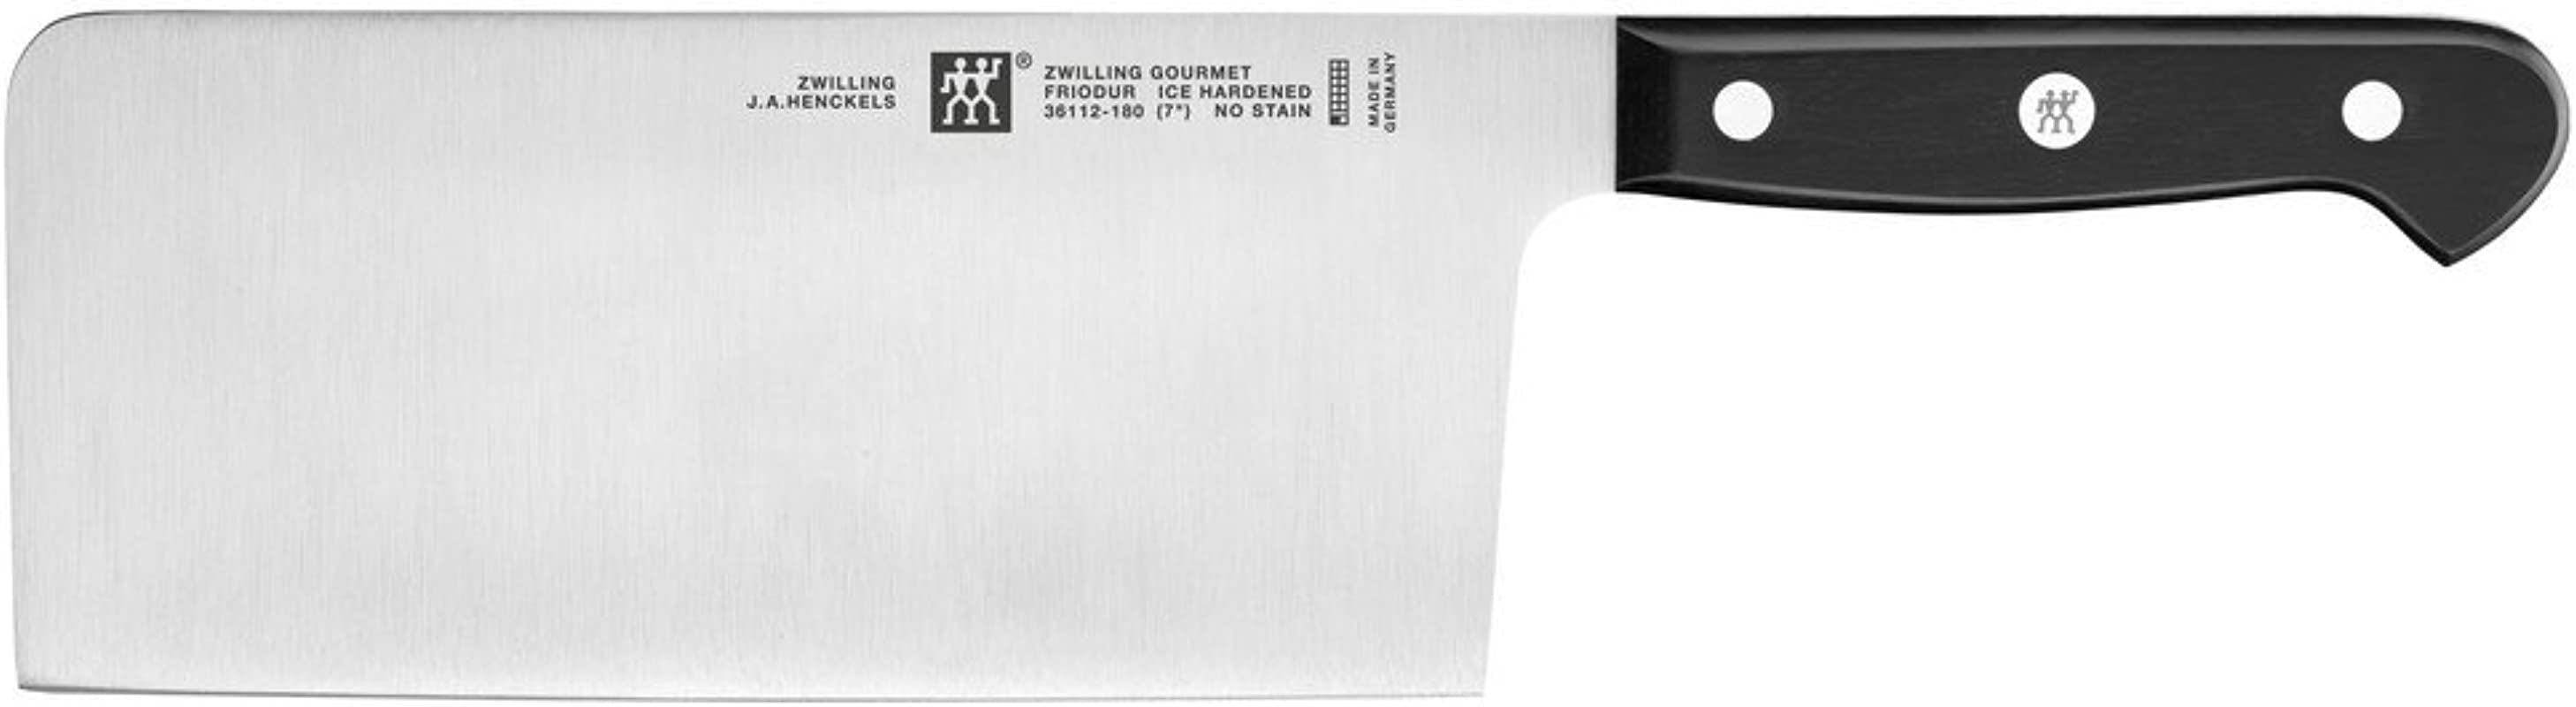 ZWILLING J A Henckels ZWILLING Gourmet 7 Chinese Chefs Knife Vegetable Cleaver Black Stainless Steel